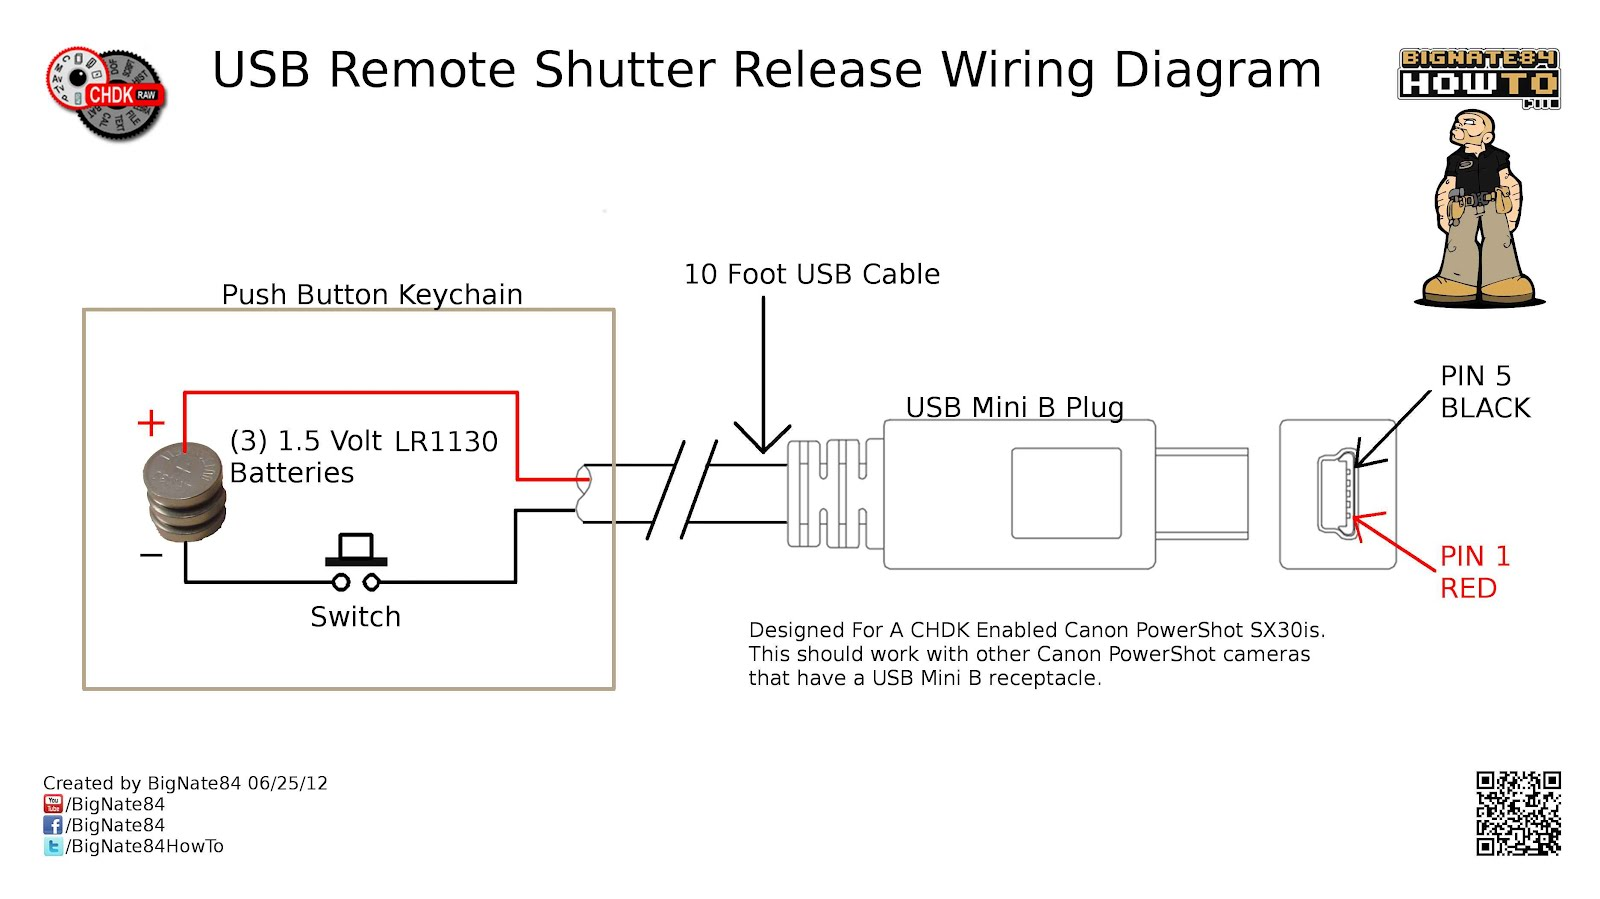 latest?cb=20120809225626 image 0001 usb remote shutter wiring diagram 1 jpeg chdk wiki usb to mini usb wire diagram at soozxer.org